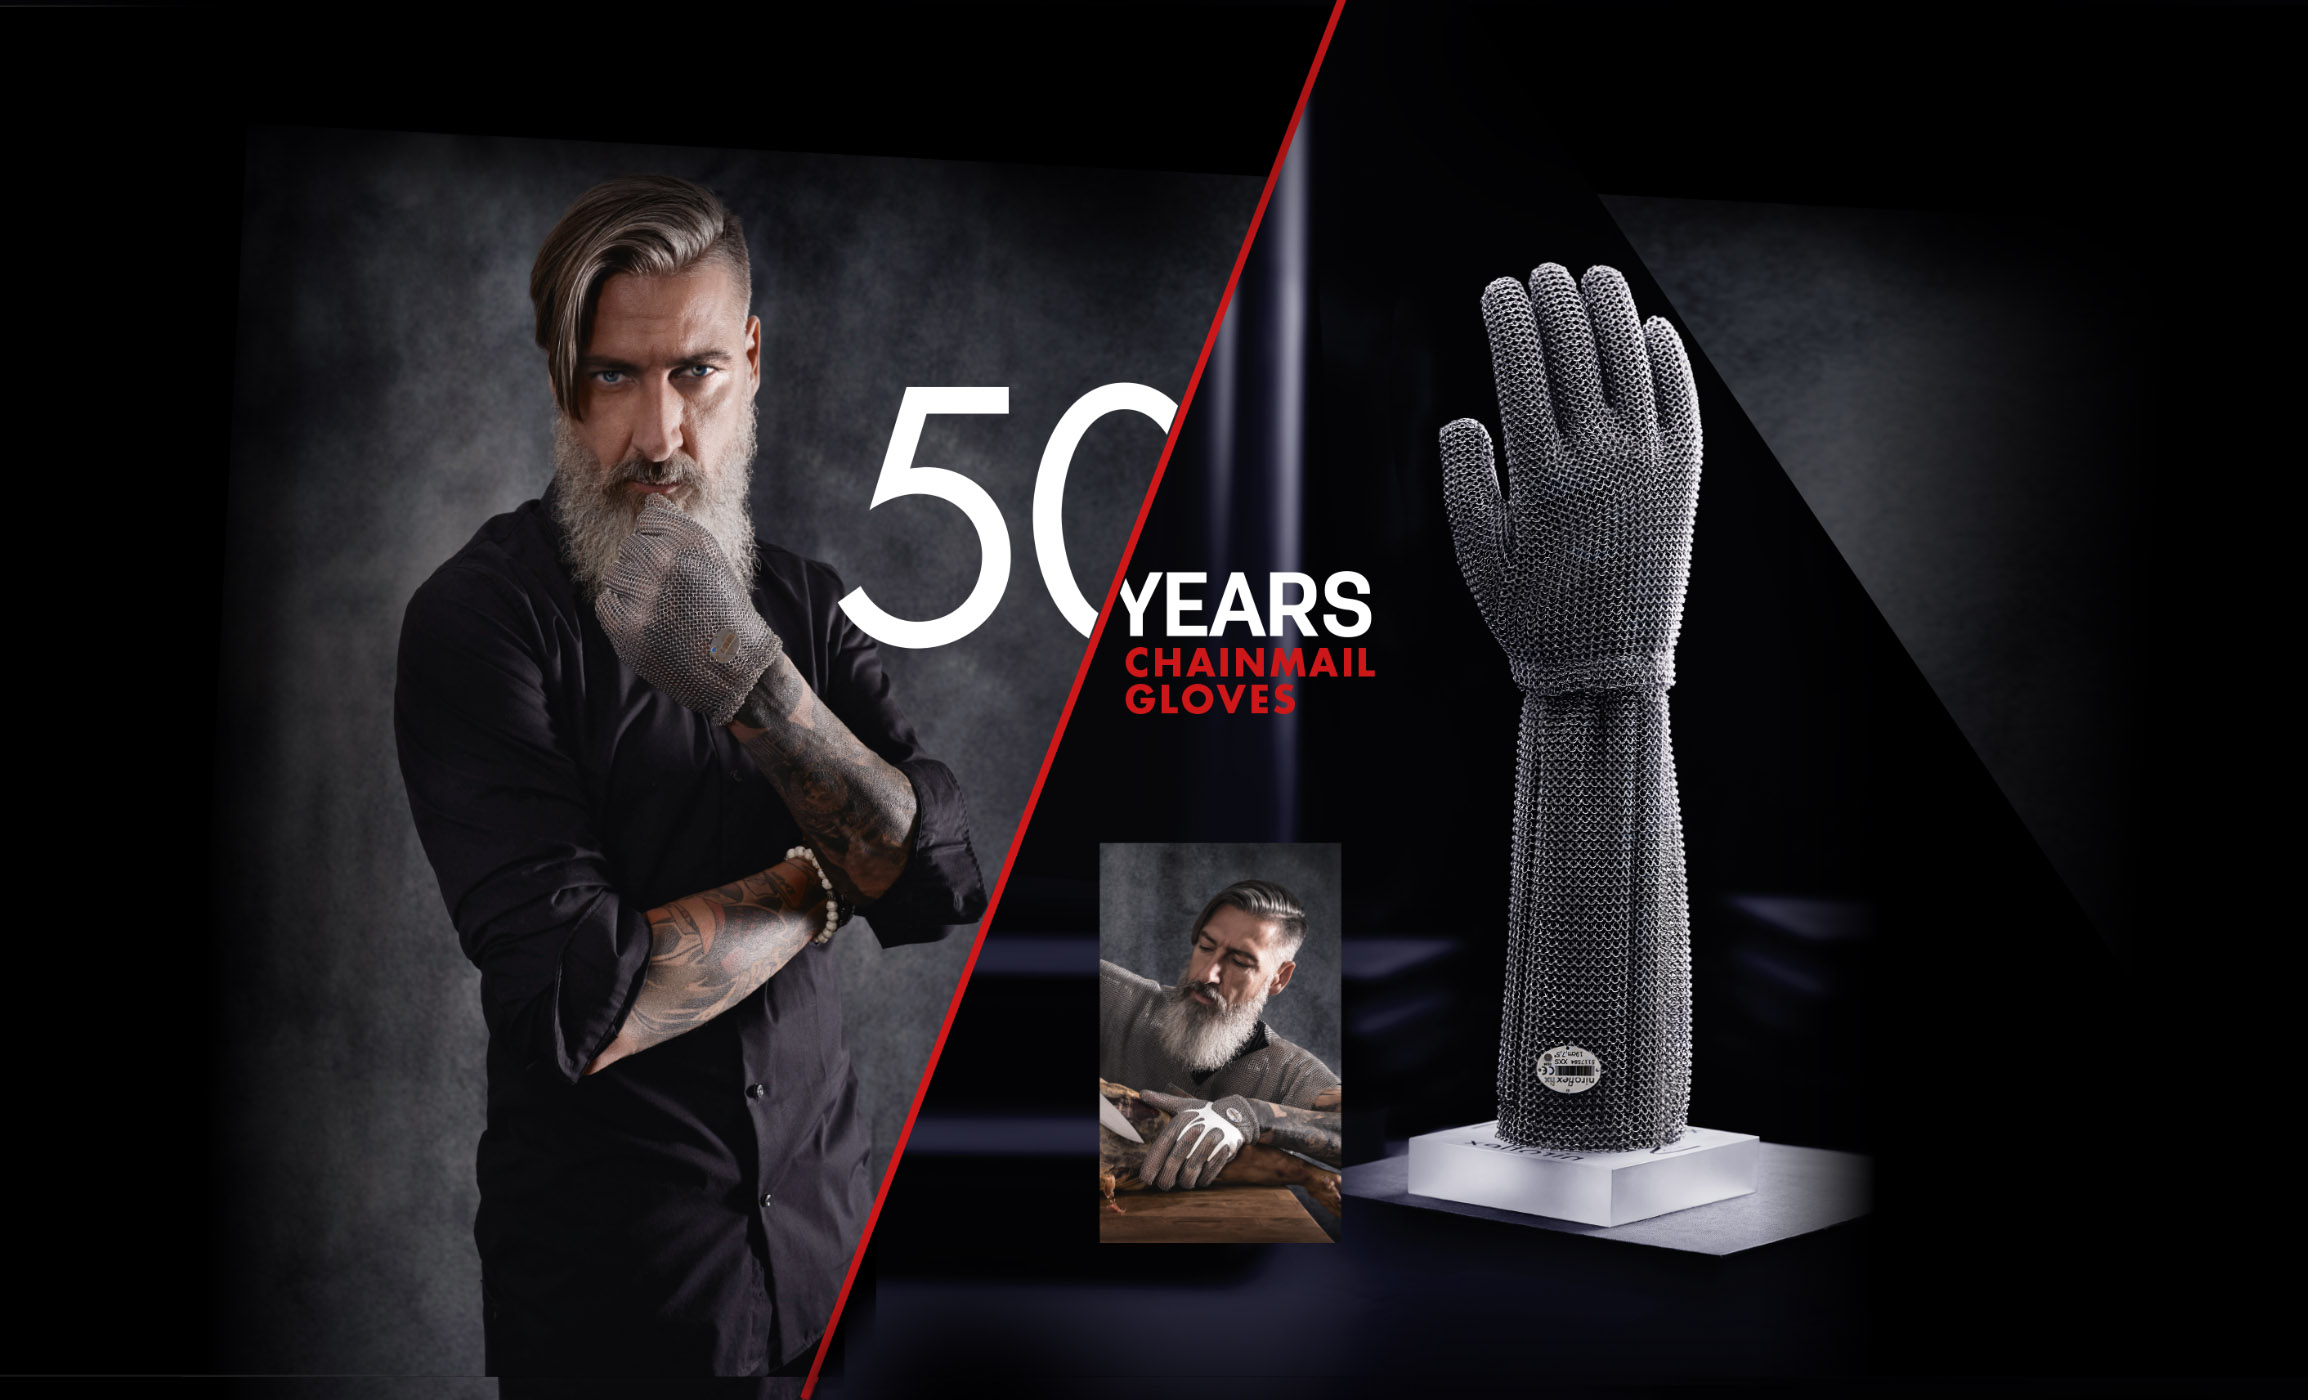 50 years of ring mesh gloves, 50 years of safety